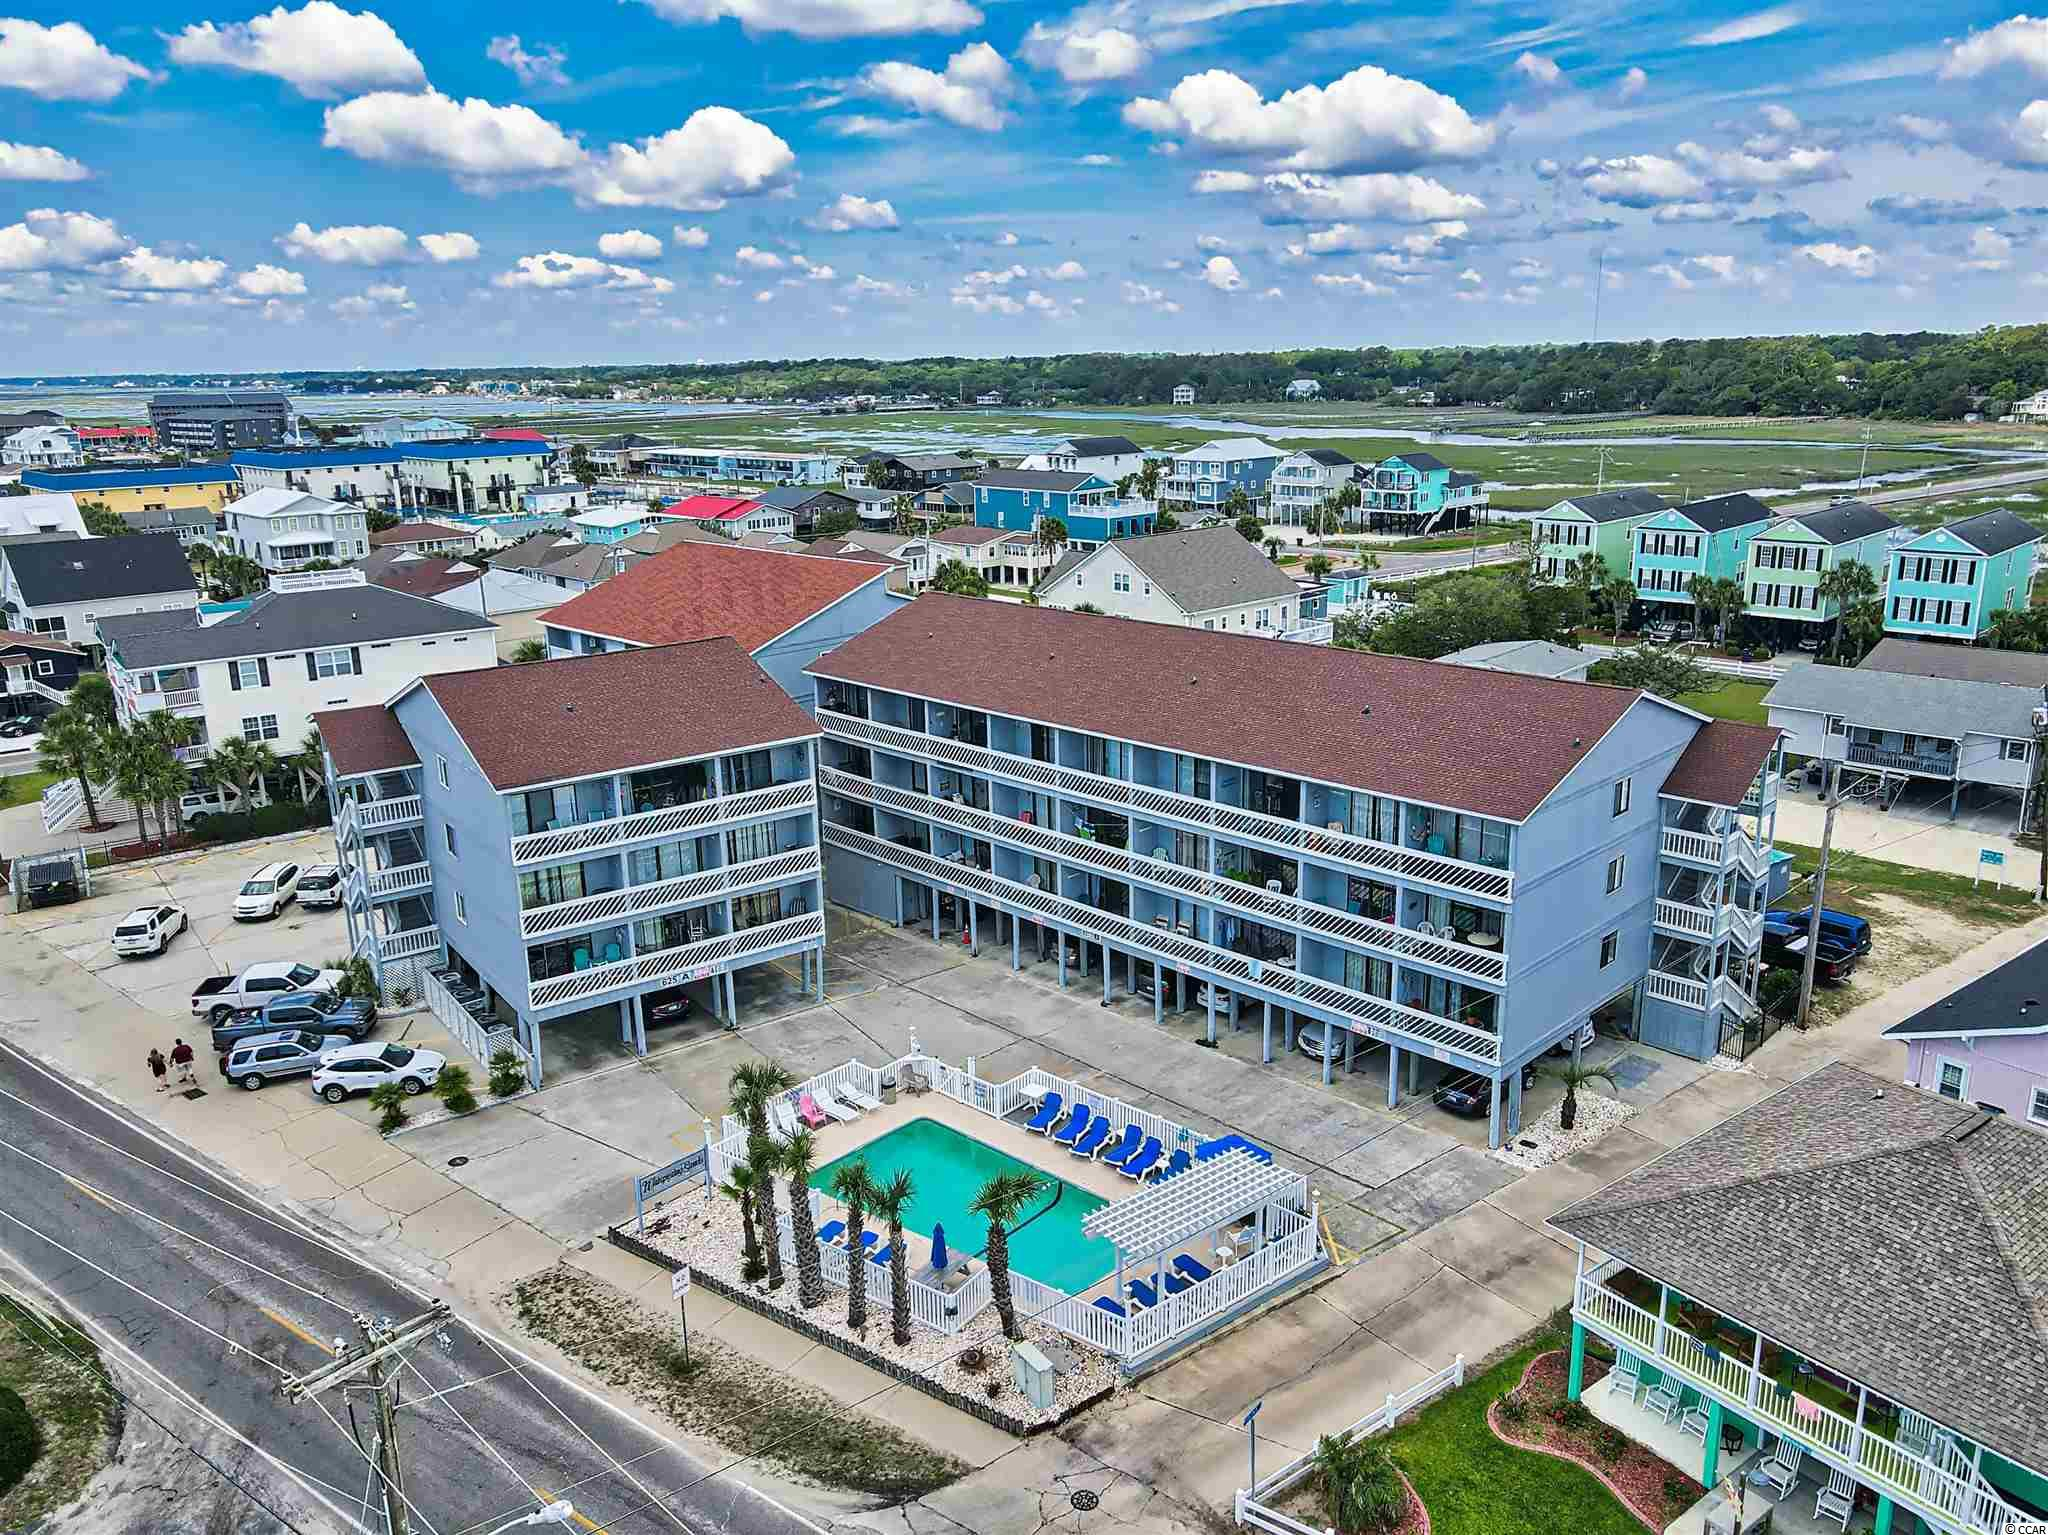 Great price on this bright cheery beachy 1BR BA bungalow just steps to the beach. A short walk to Garden City Pier. Top floor, end unit. Balcony overlooking pool. Come check it out. It won't last long !